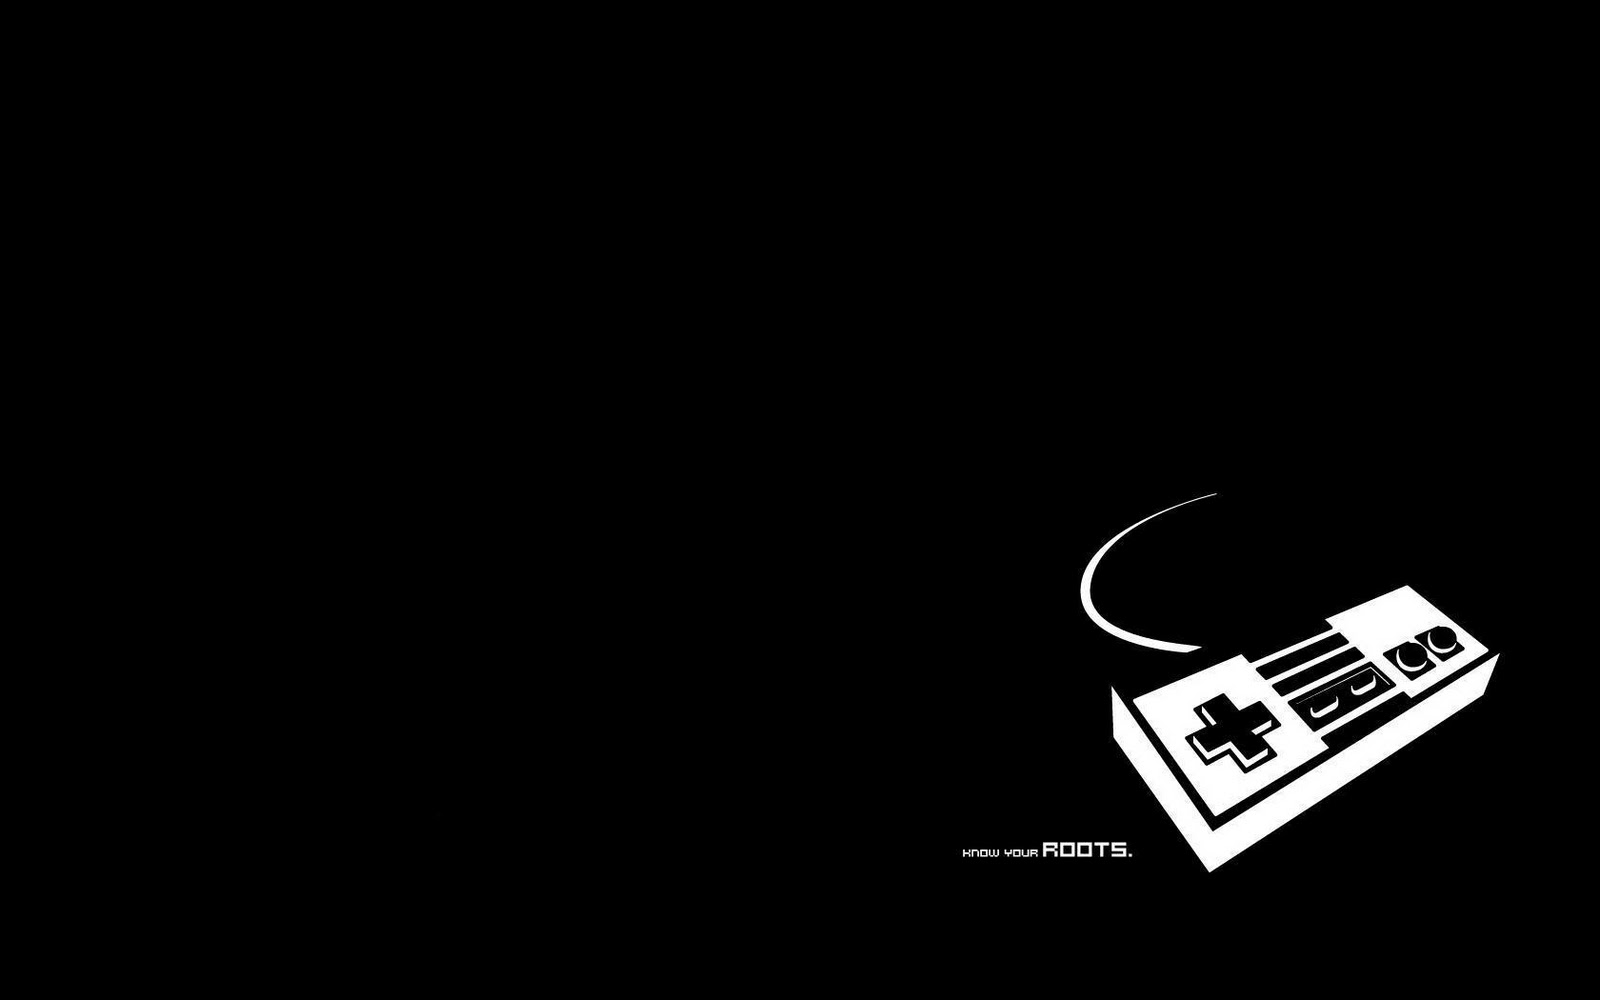 retro game console wallpaper - photo #15